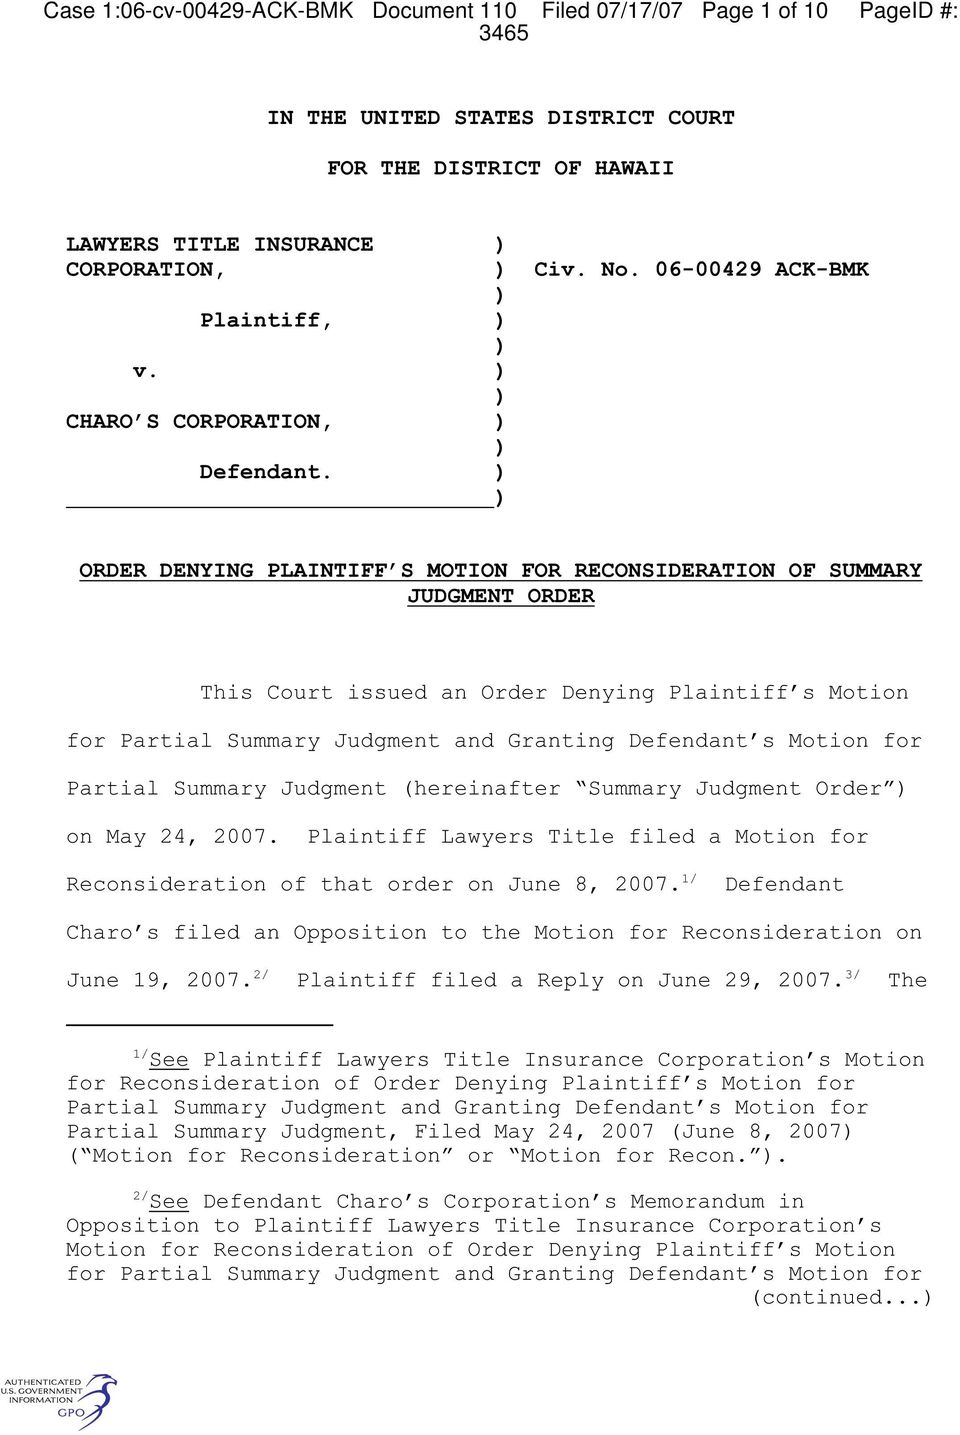 06-00429 ACK-BMK ORDER DENYING PLAINTIFF S MOTION FOR RECONSIDERATION OF SUMMARY JUDGMENT ORDER This Court issued an Order Denying Plaintiff s Motion for Partial Summary Judgment and Granting